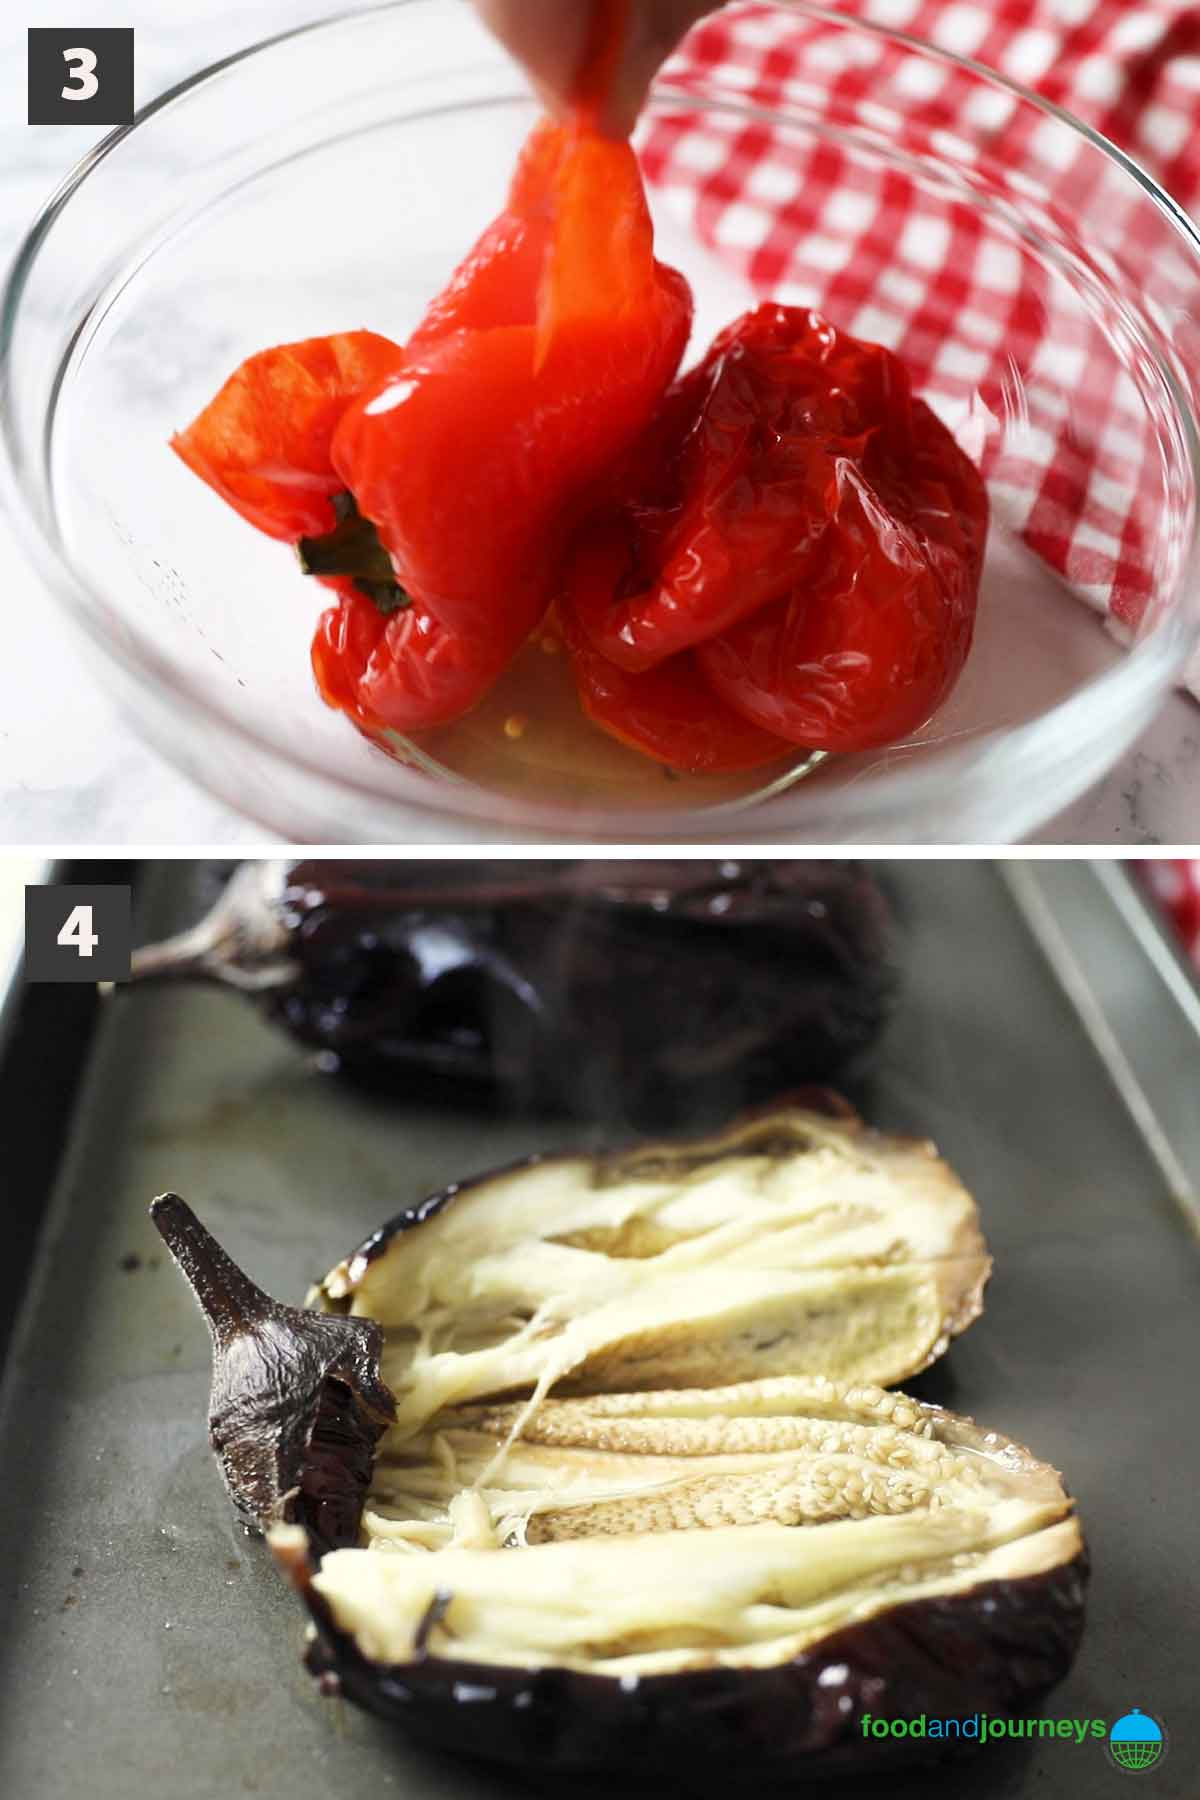 Second part of a collage of images showing how to prepare marinated eggplant at home.